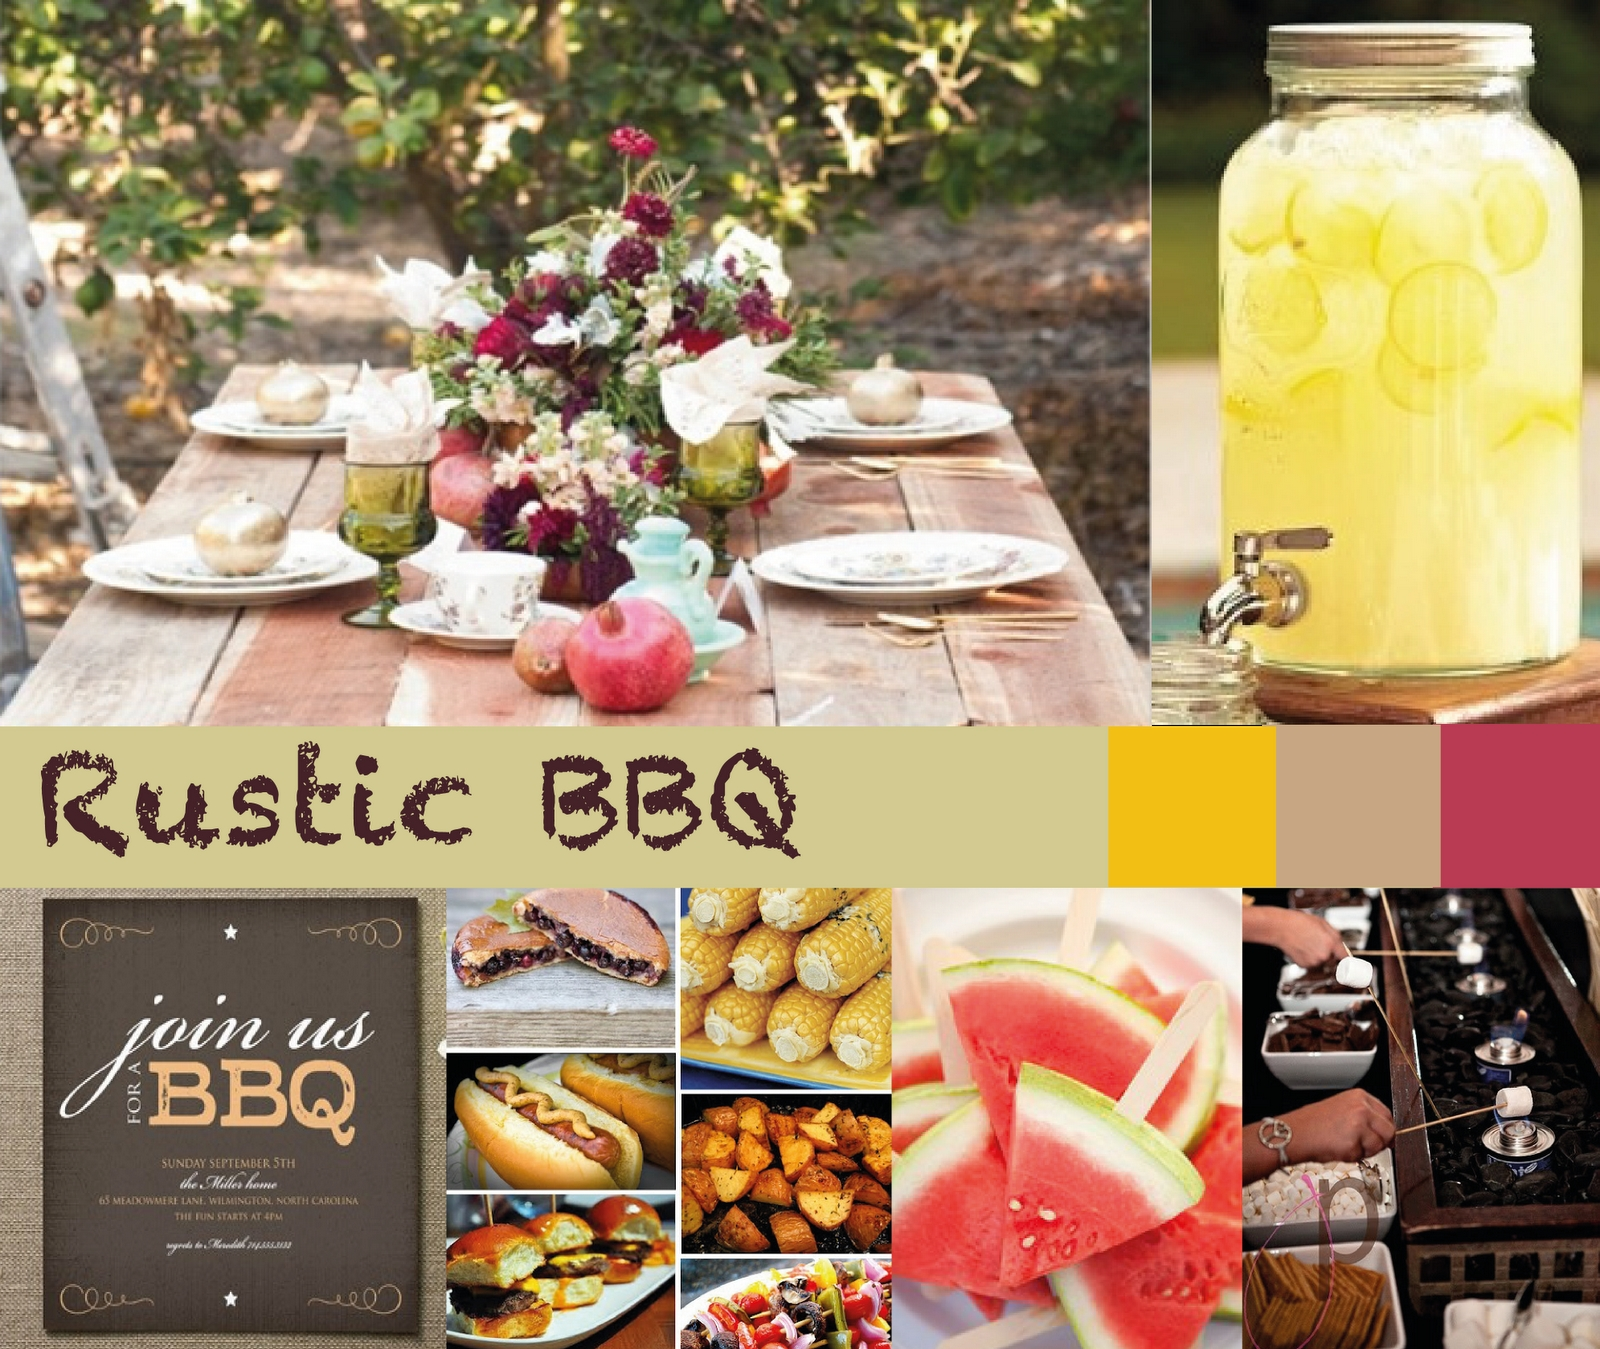 10 Pretty Bbq Party Ideas For Adults savvy blog selebrating lifes special moments summer party